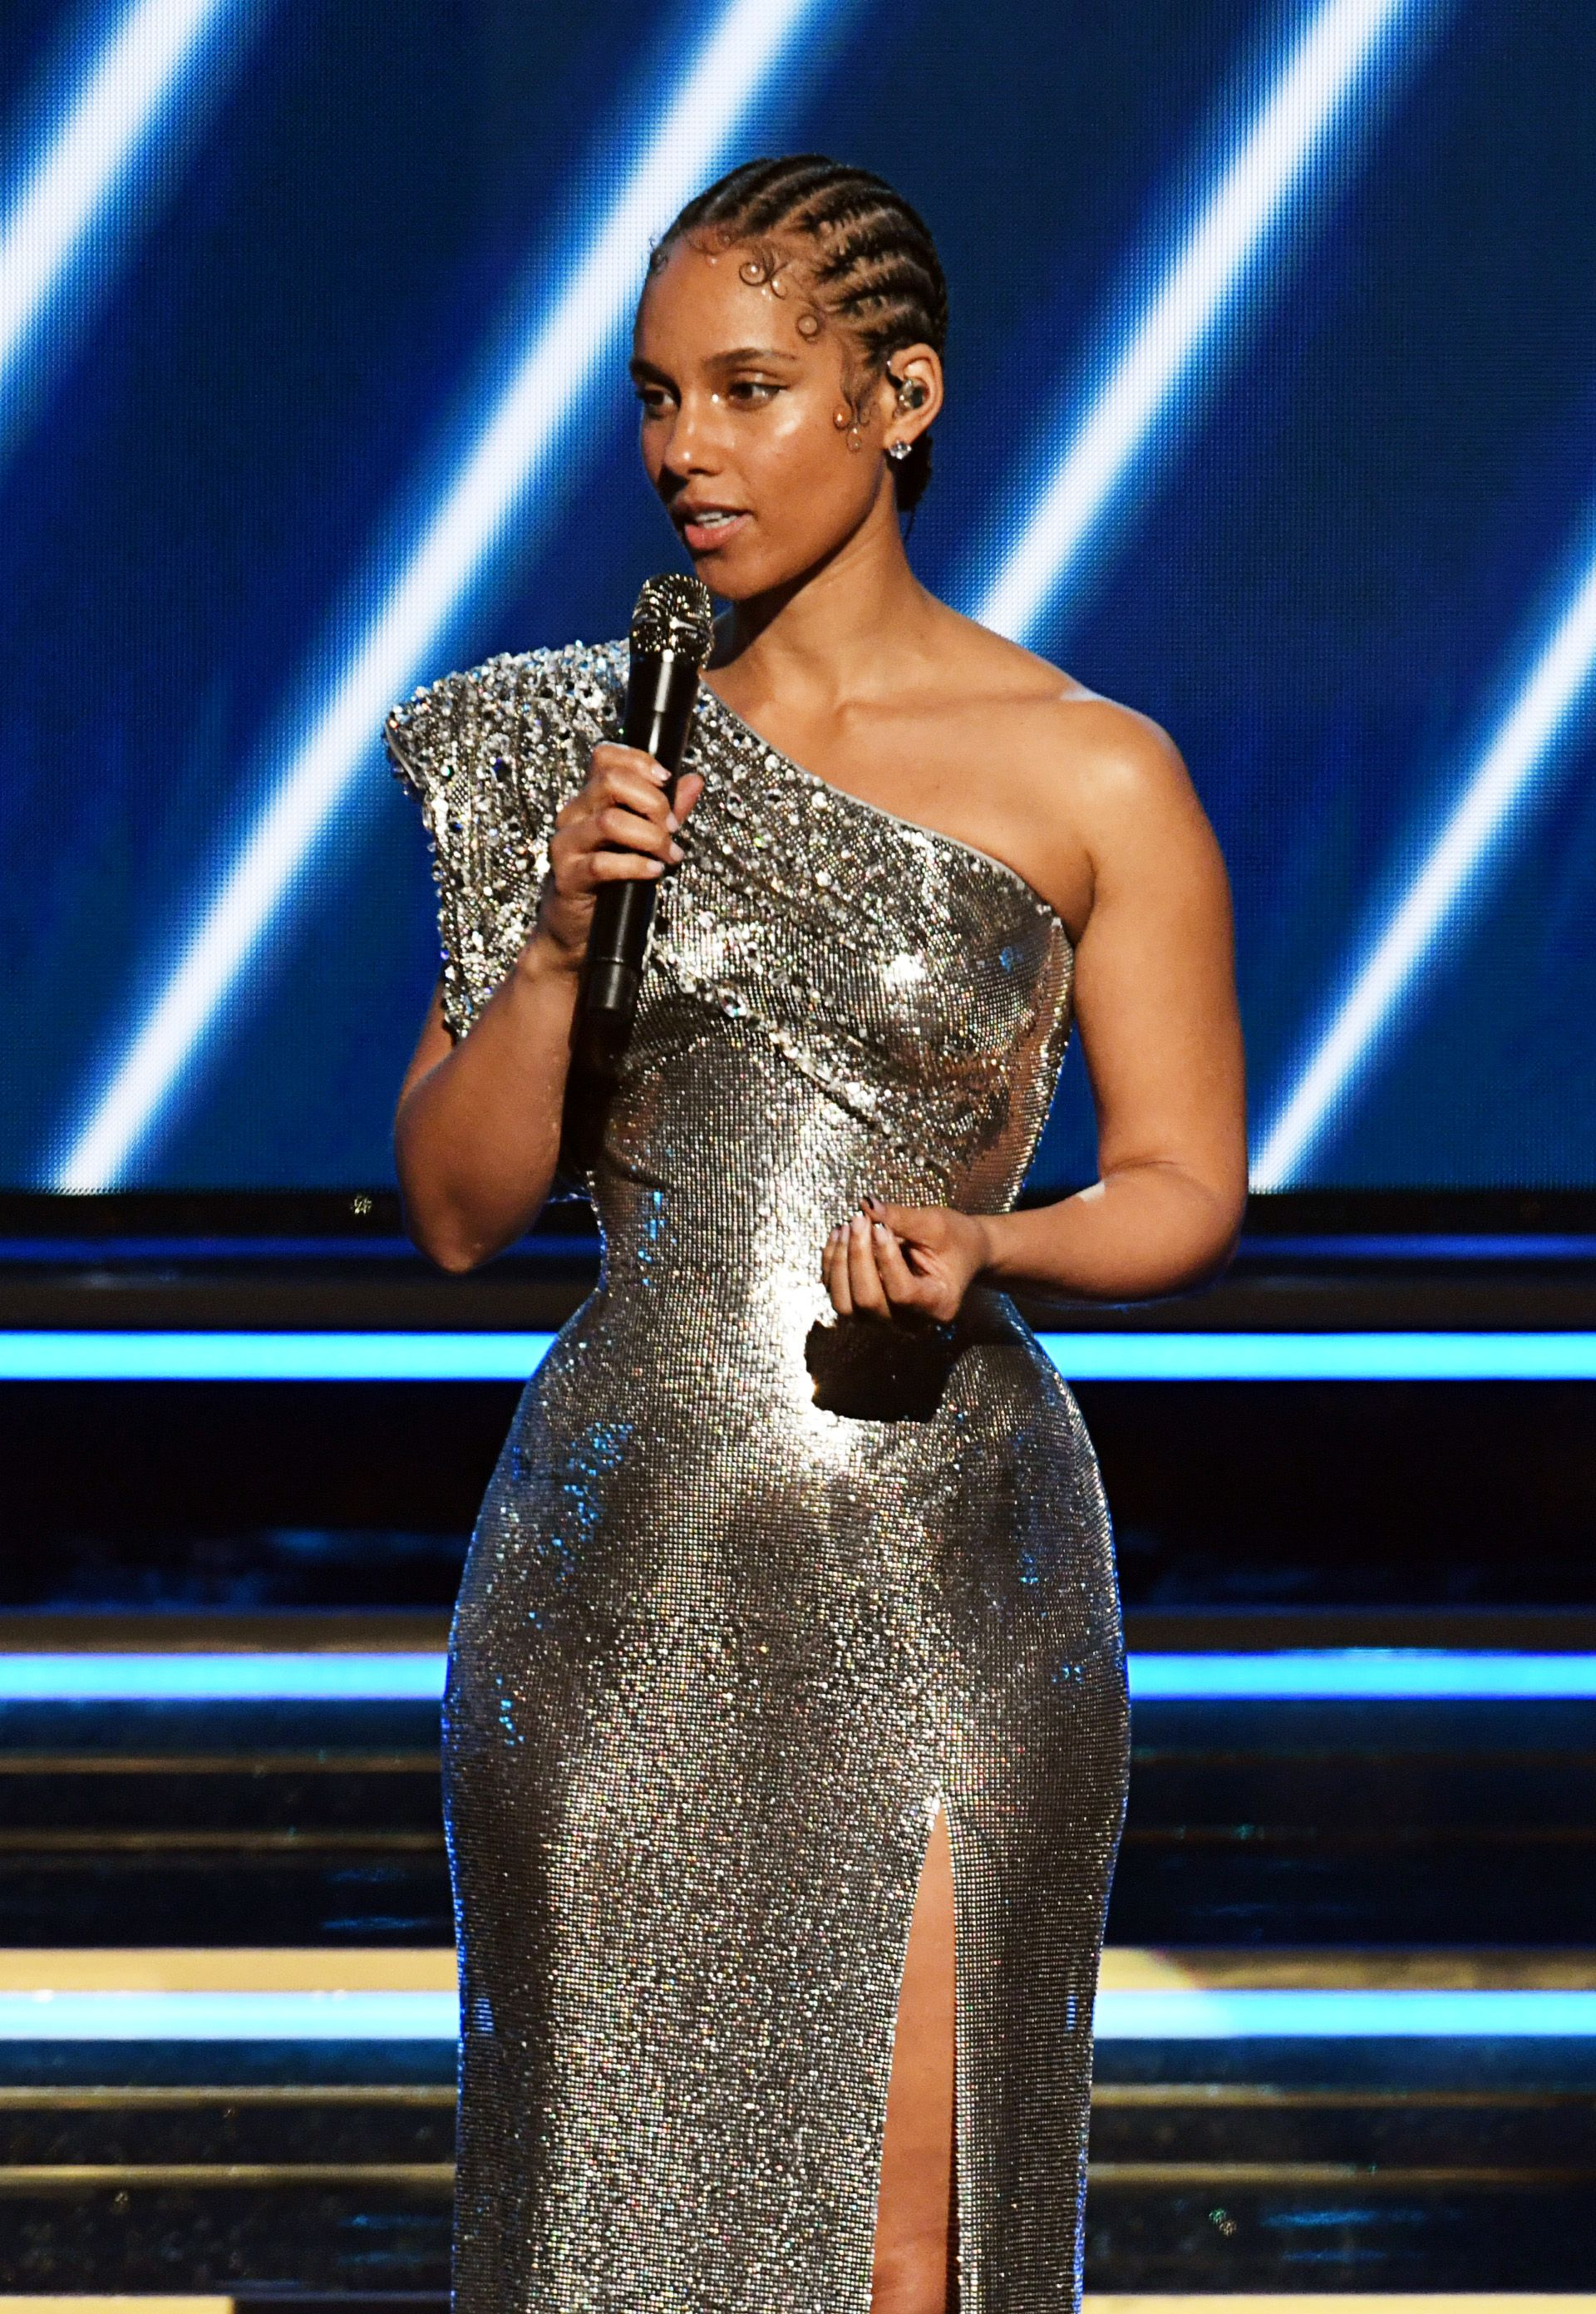 Alicia Keys Opened the Grammys With a Touching Tribute to Kobe Bryant and His Daughter Gianna